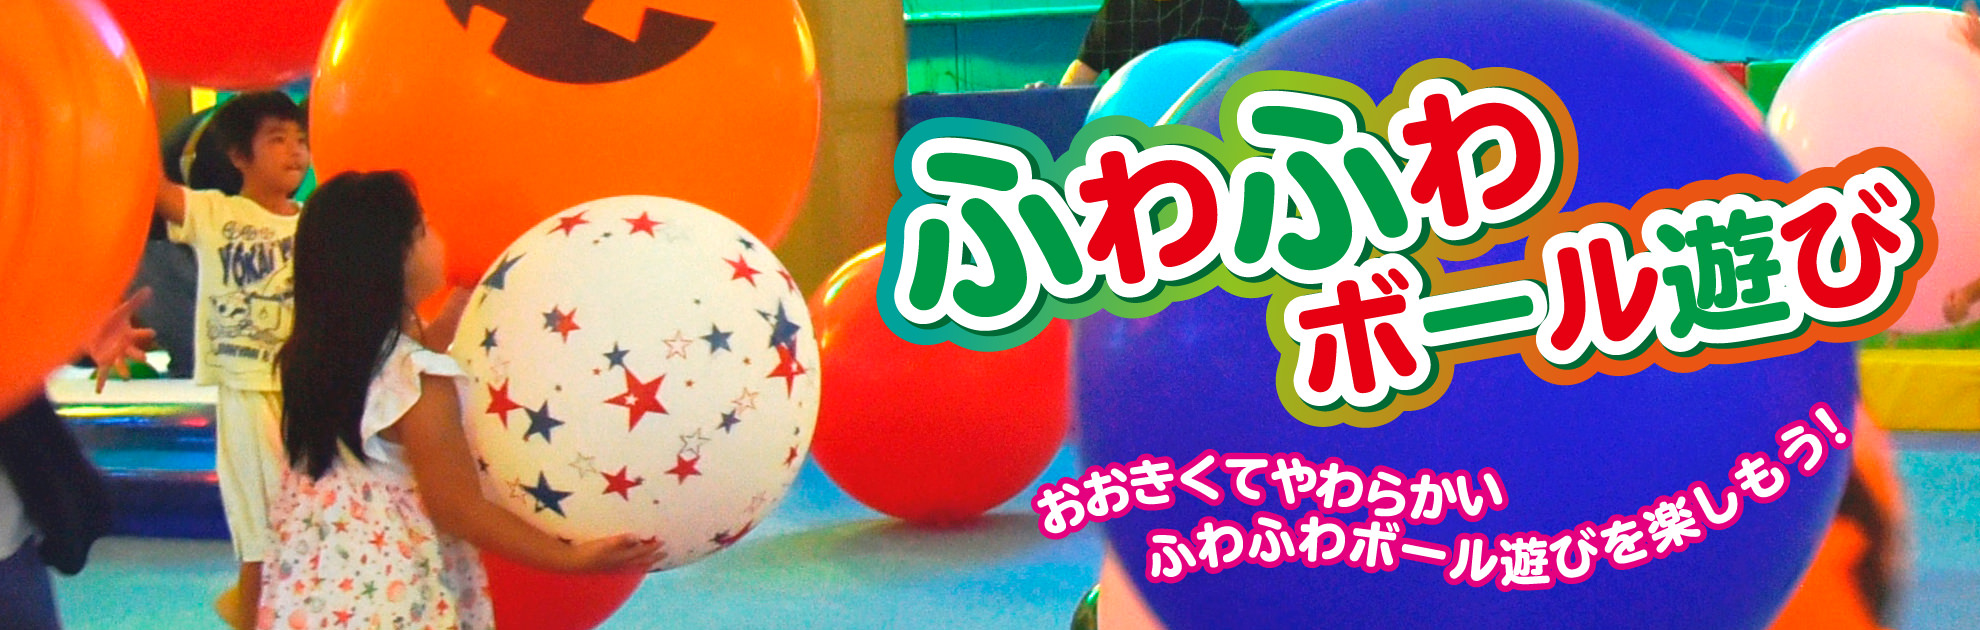 Soft and fluffy ball play holding! Even small child can play in peace without being influenced by weather in dome-formed large space. In meeting place, it is decoration and starlit sky of balloon